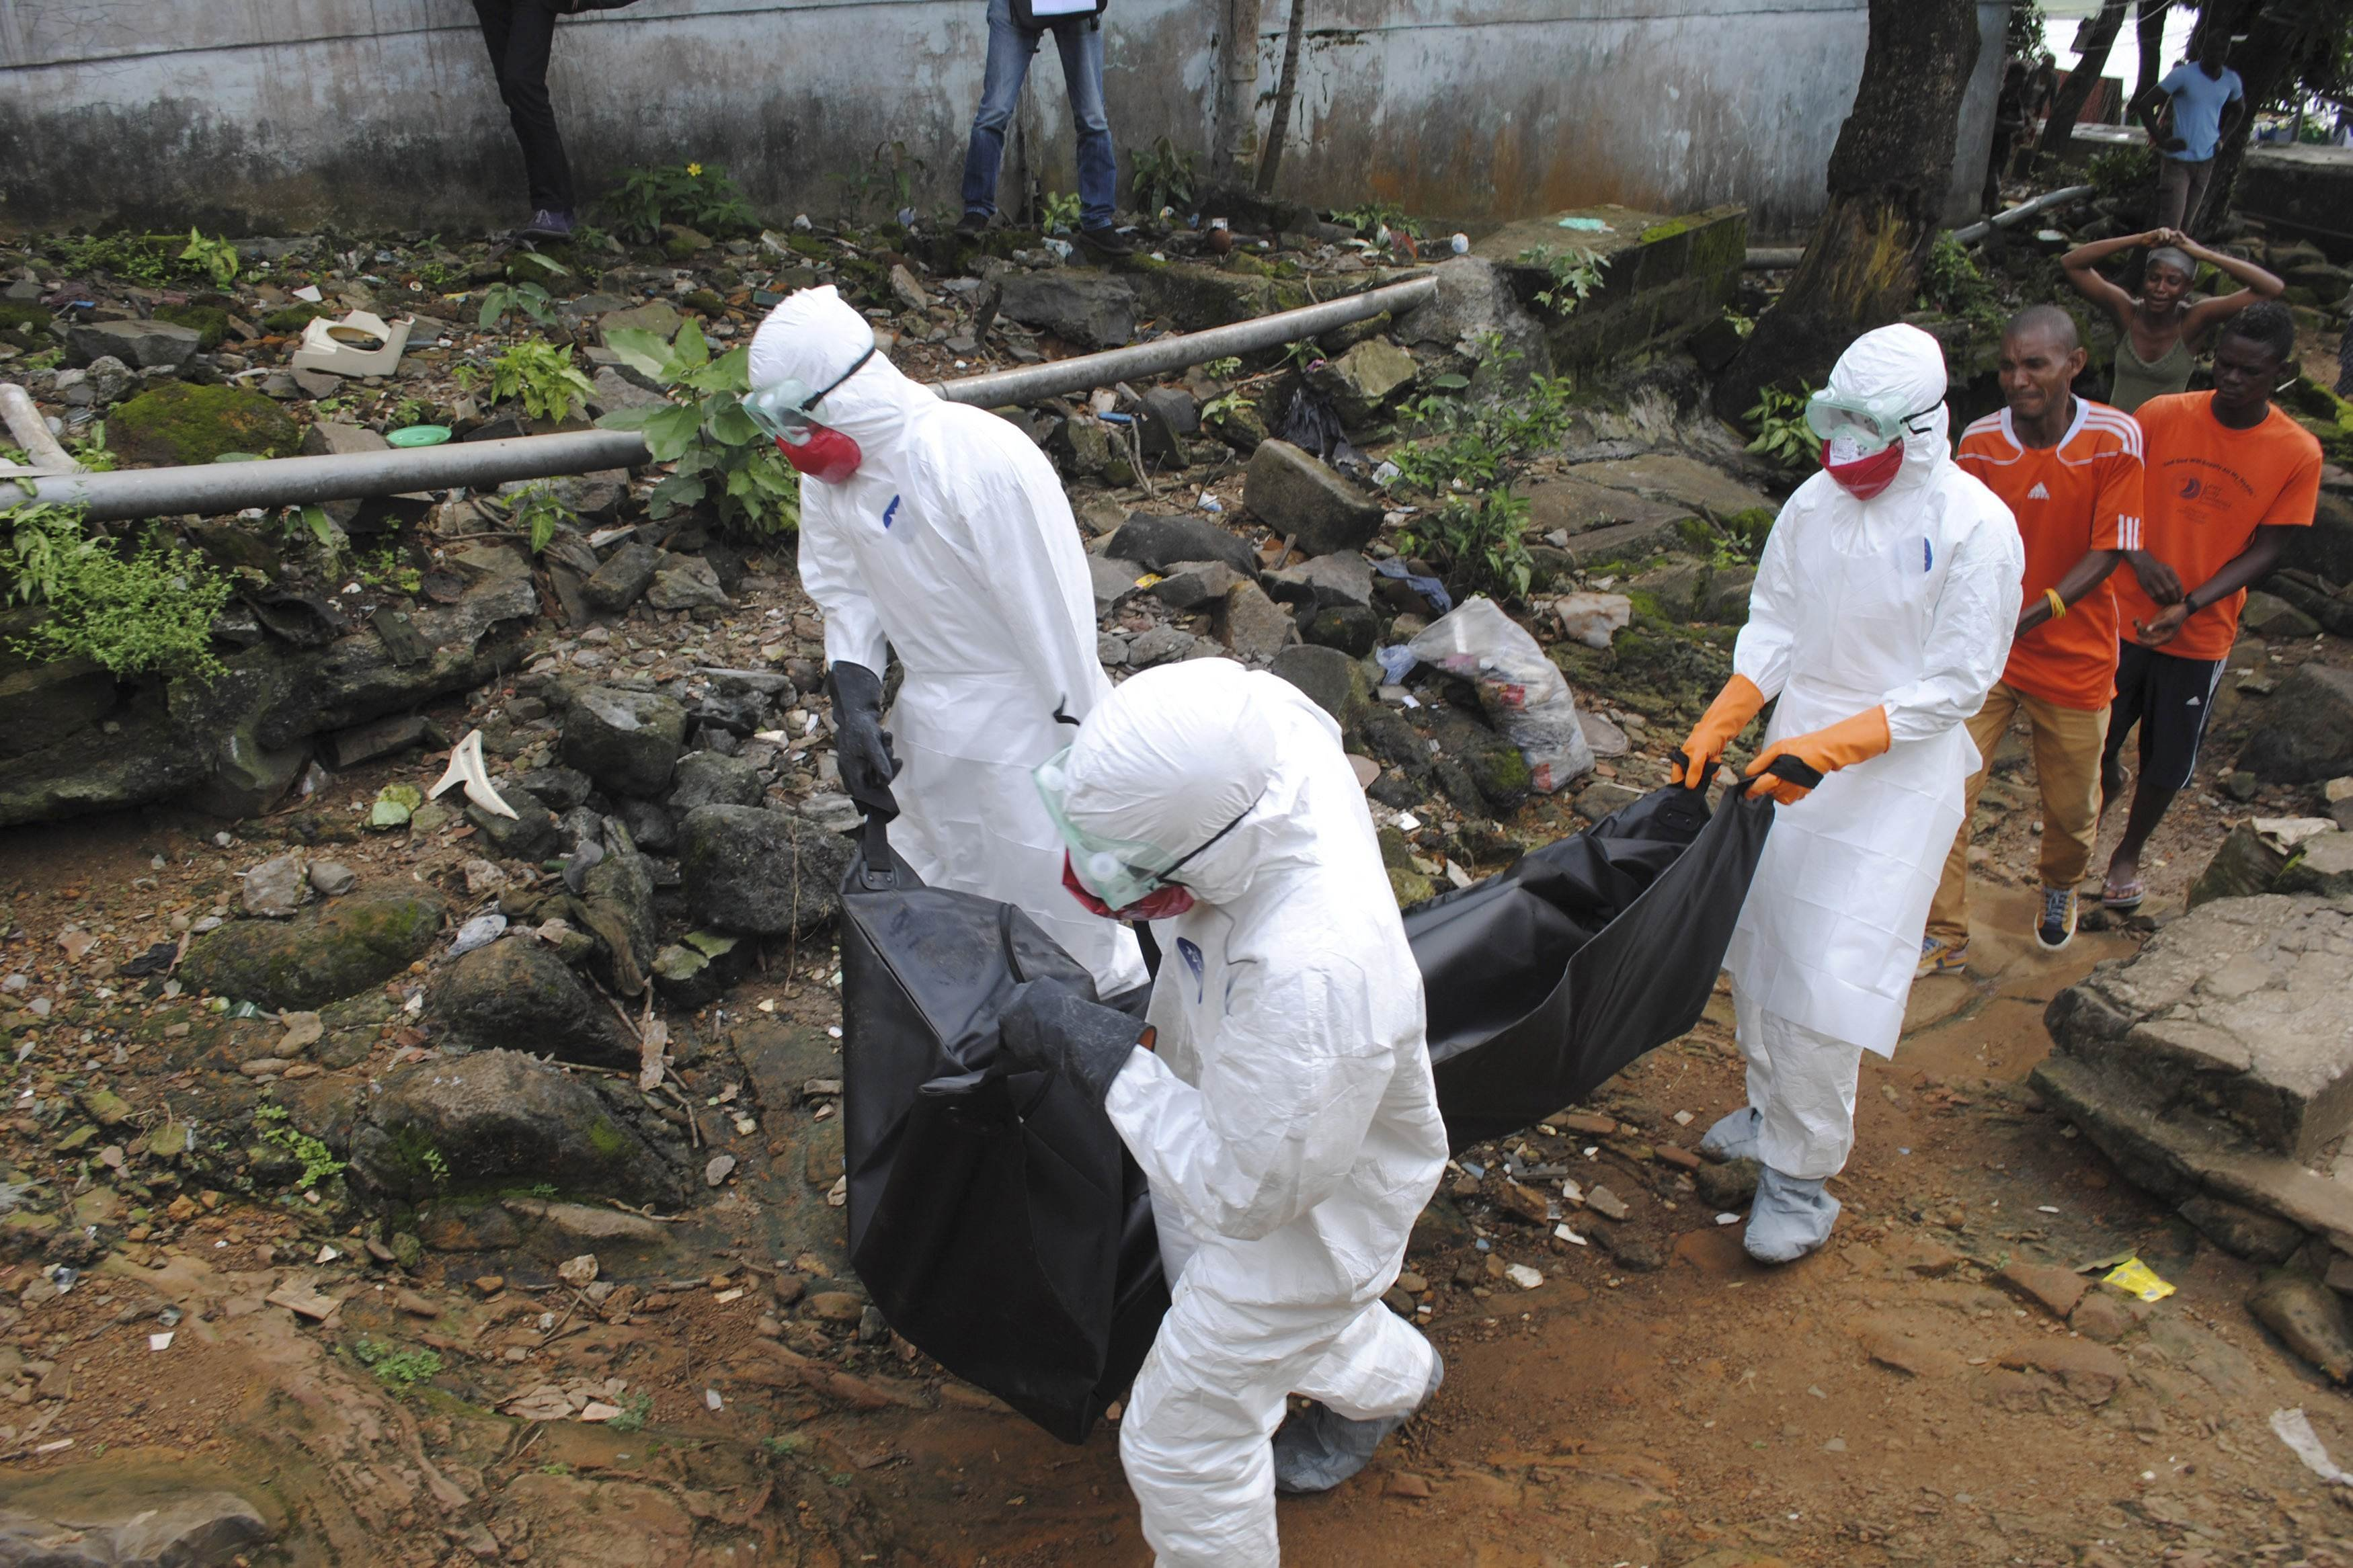 Health workers remove the body of Prince Nyentee, a 29-year-old man whom local residents said died of Ebola virus in Monrovia, Liberia on Sept. 11, 2014.